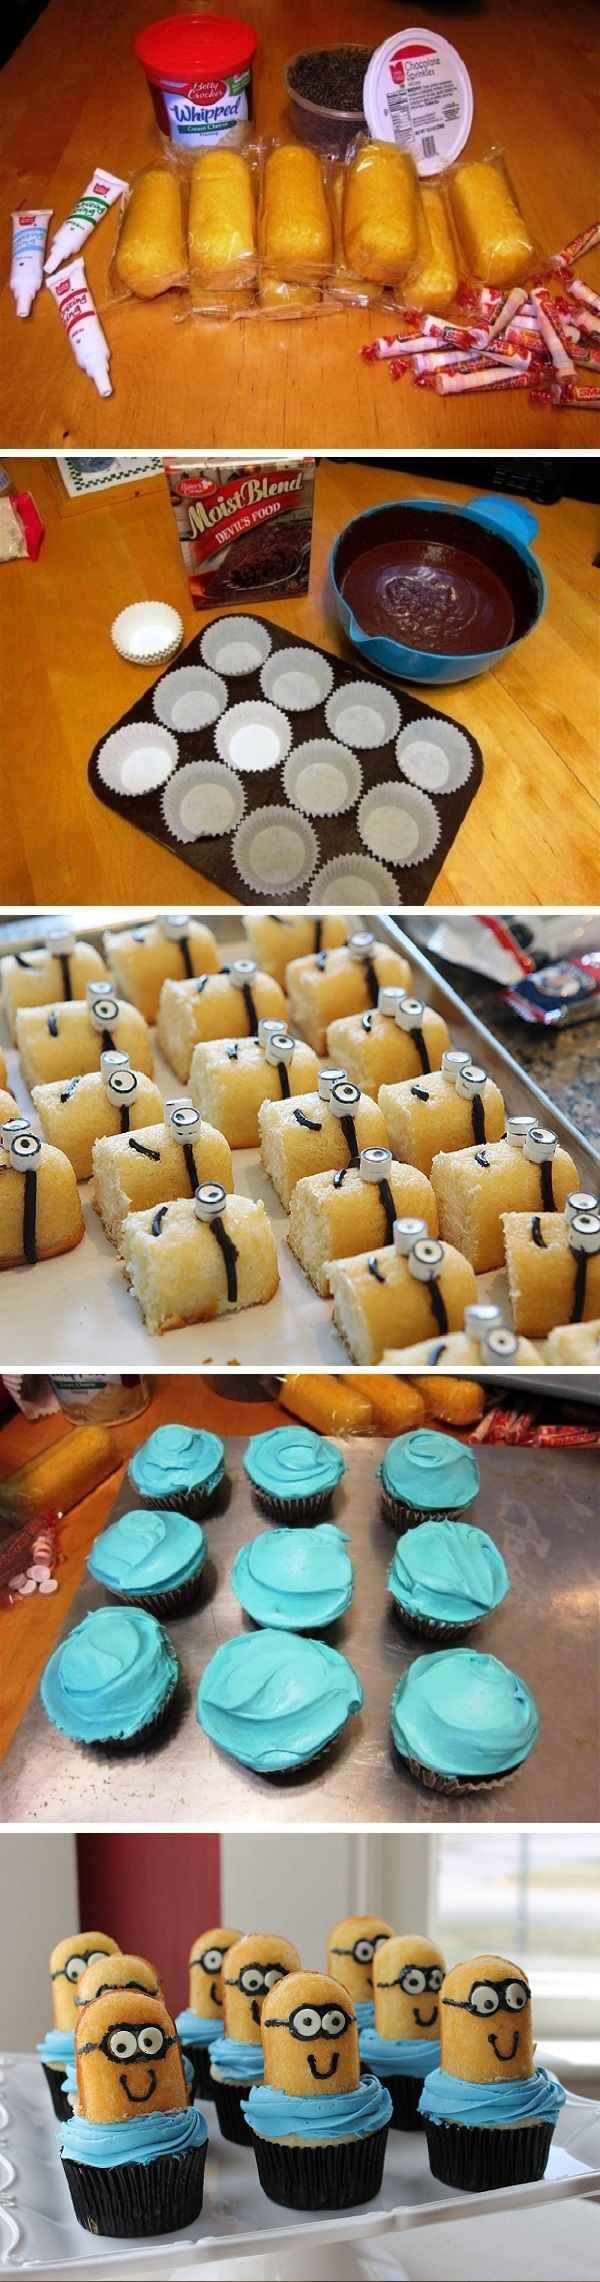 How to Make Despicable Me Minion Cupcakes Twinkie Edition - Cupcakepedia: Desserts, Minion Cupcakes, Birthday Parties, Food, Minions Cupcakes, Recipes, Parties Ideas, Despicable Me, Kids